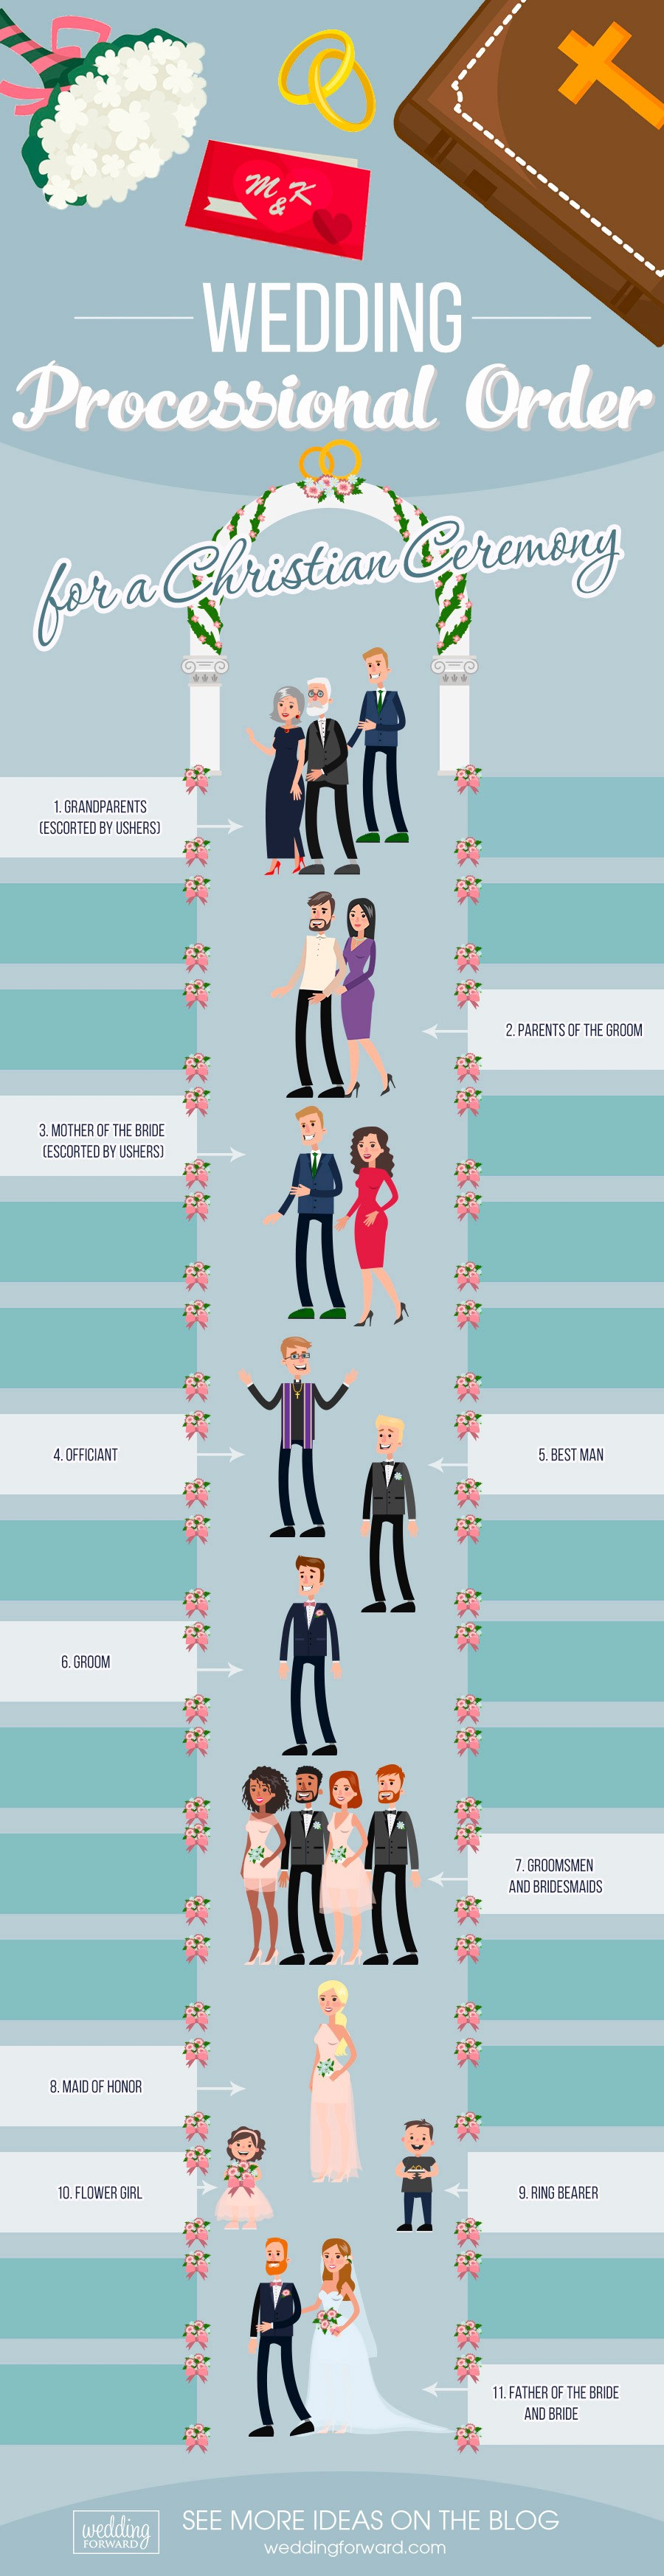 5 wedding ceremony order of events ideas infographic save wedding processional order to your pinterest board junglespirit Gallery